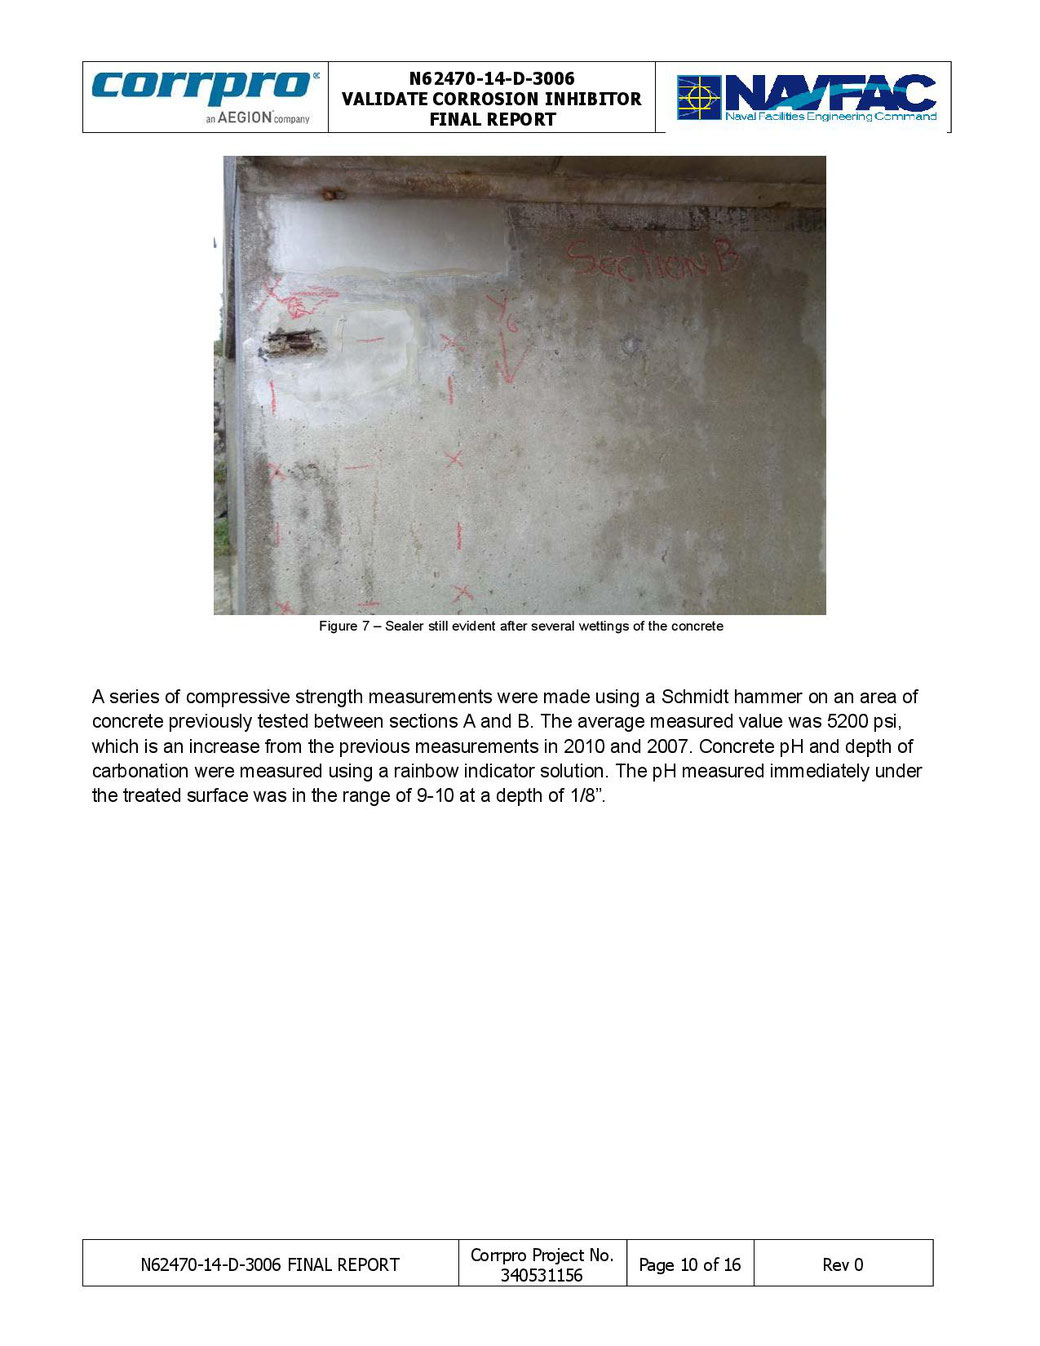 NASA - SURTREAT Corrosion Reducing Coating is Evaluated.